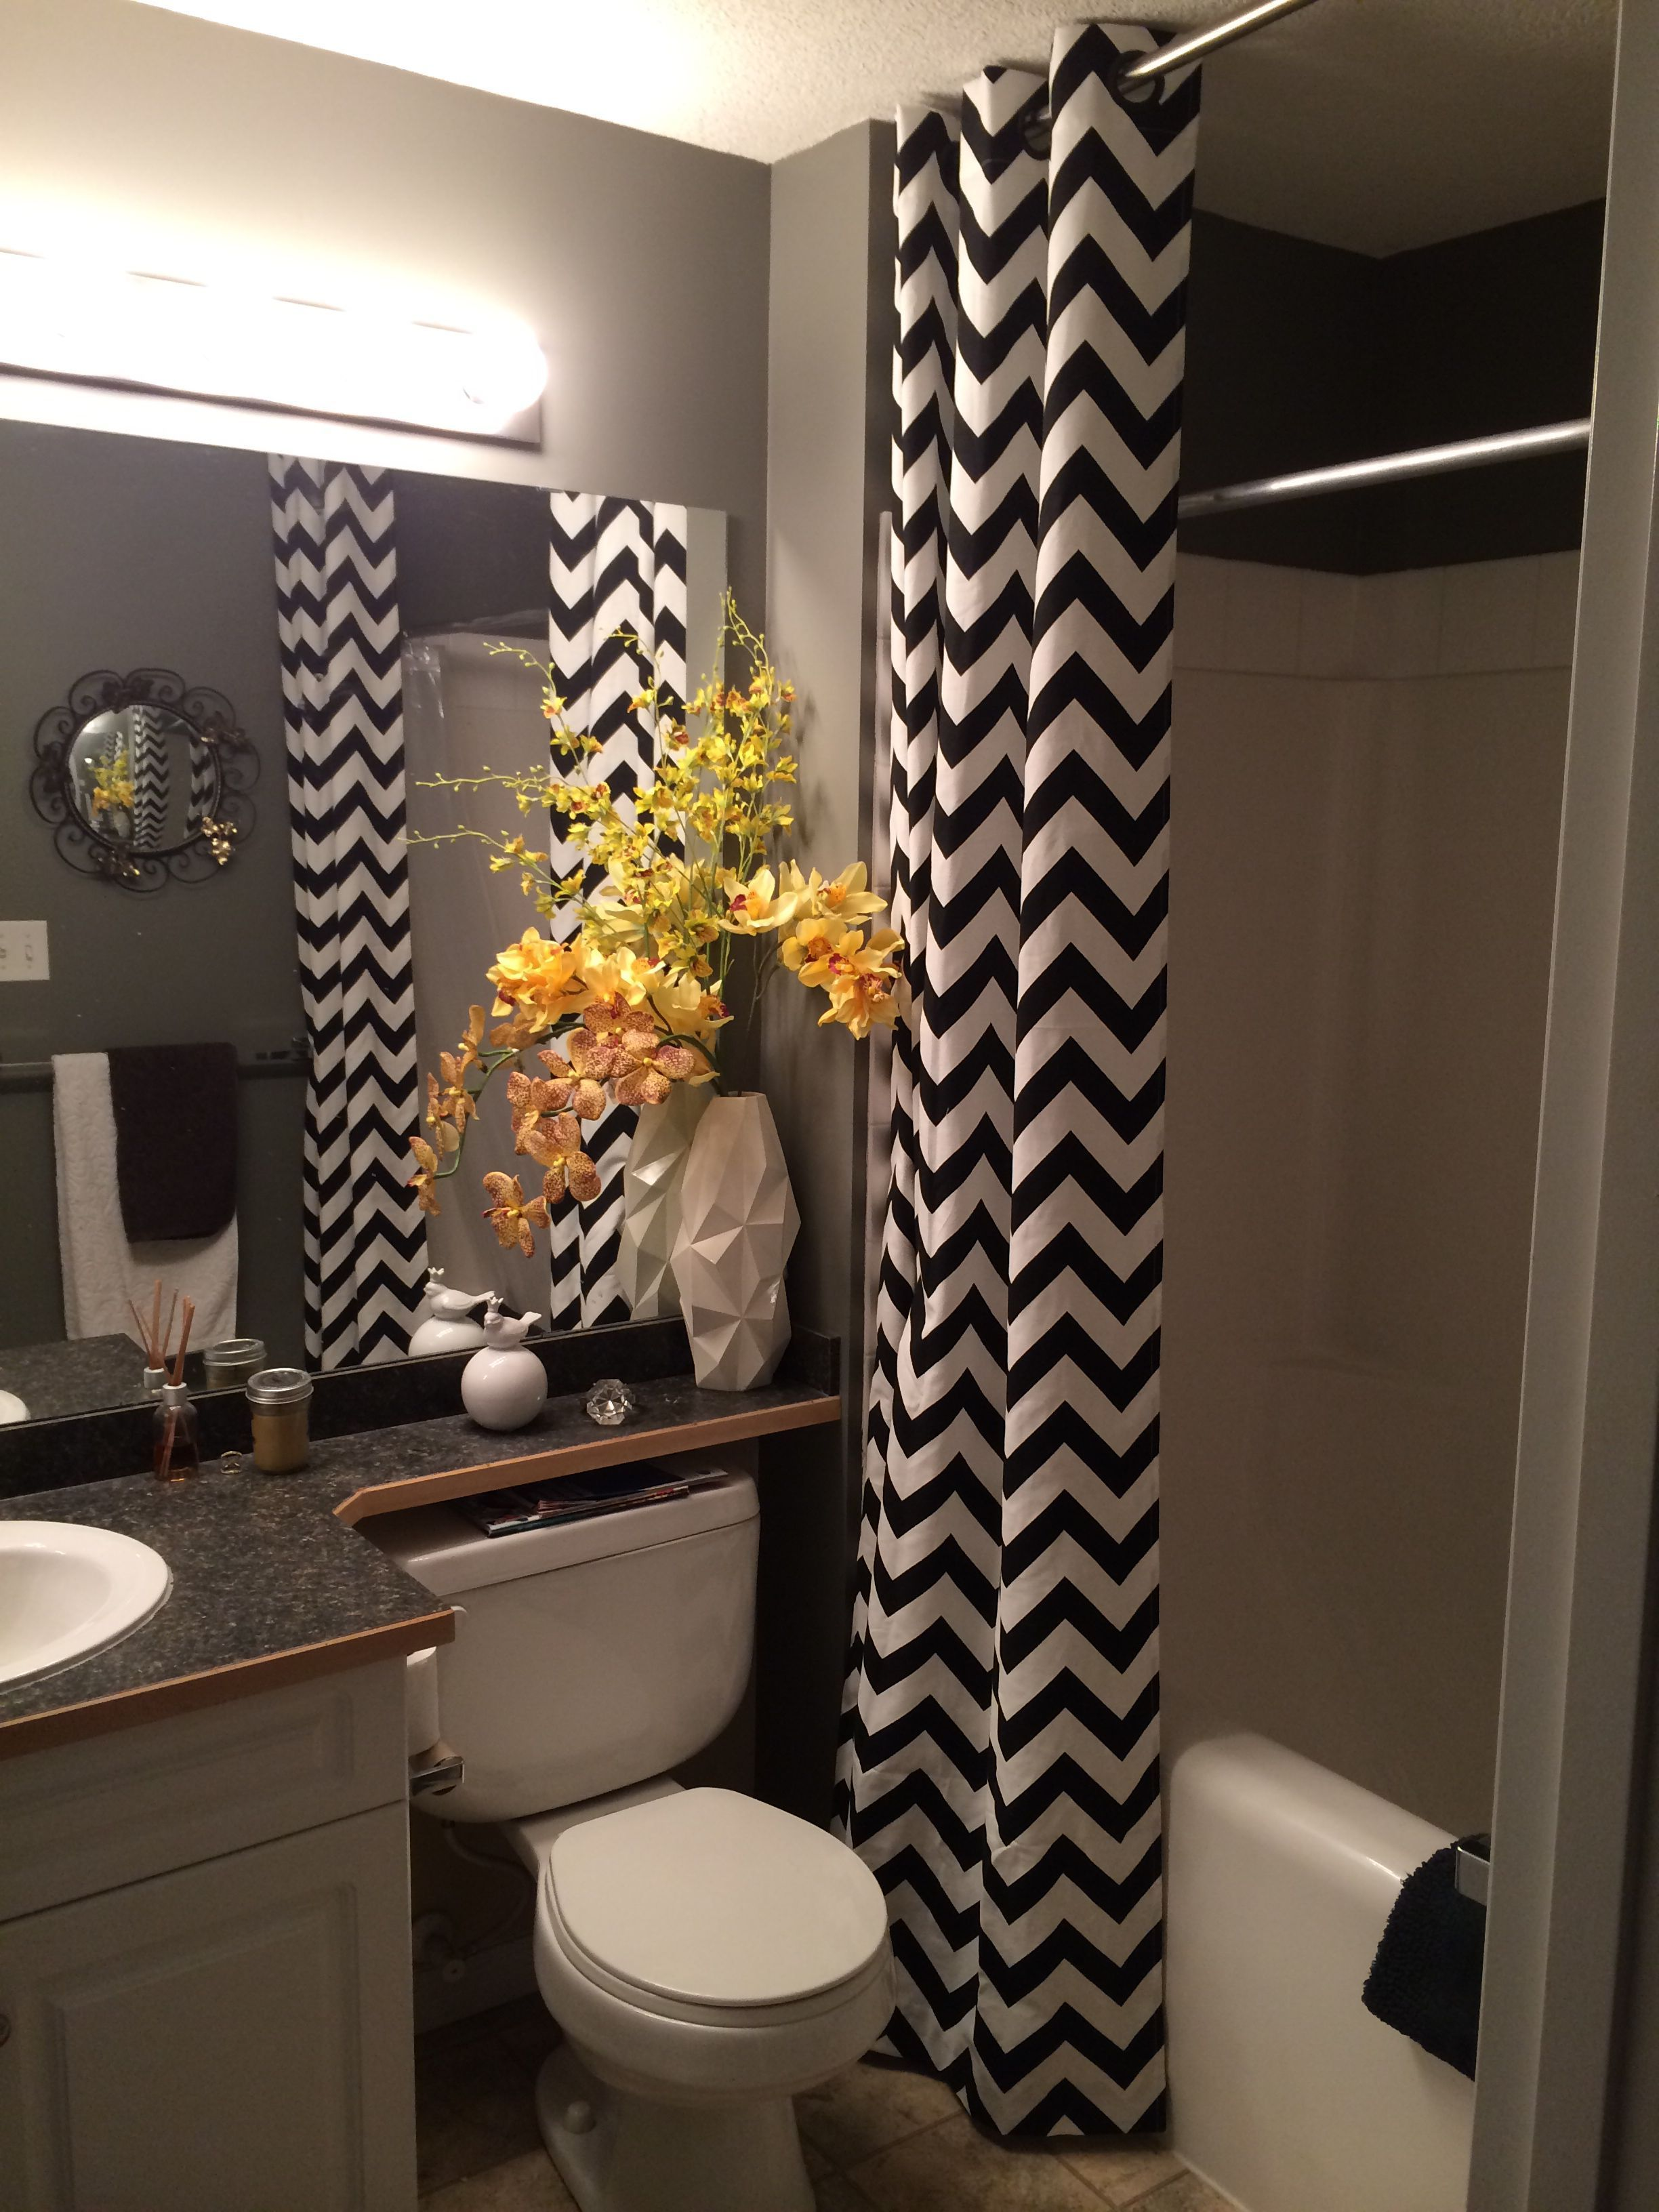 Bathroom Curtain Ideas Black And White In 2020 Floor To Ceiling Curtains Bathroom Design Small Yellow Small Bathrooms